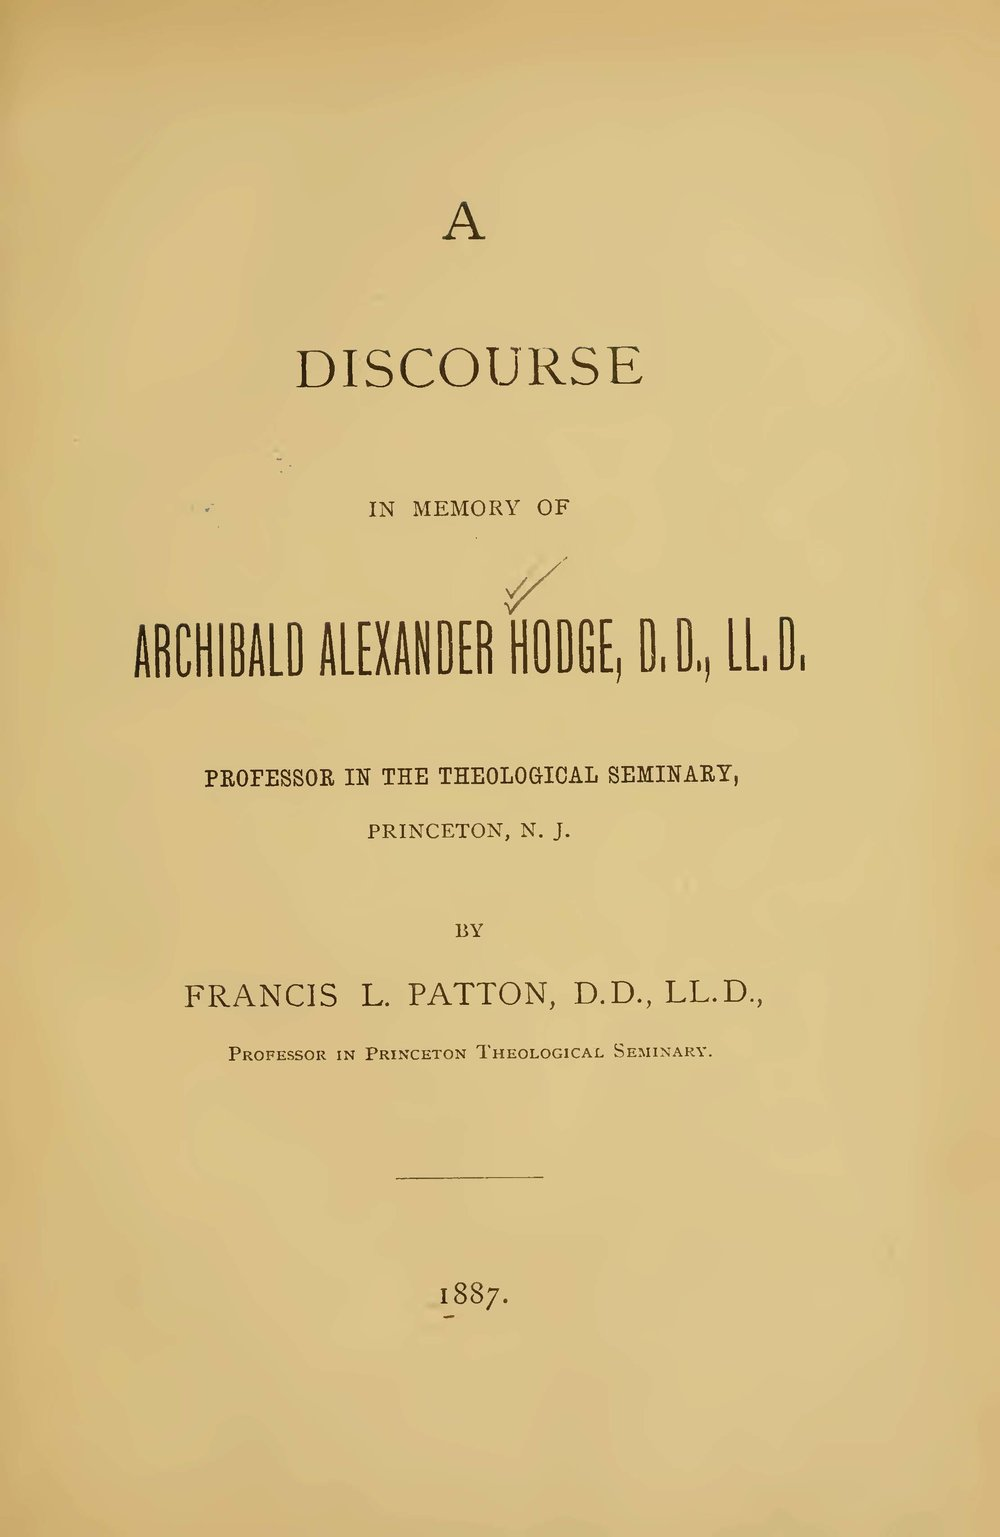 Patton, Francis Landey, A Discourse in Memory of Archibald Alexander Hodge Title Page.jpg